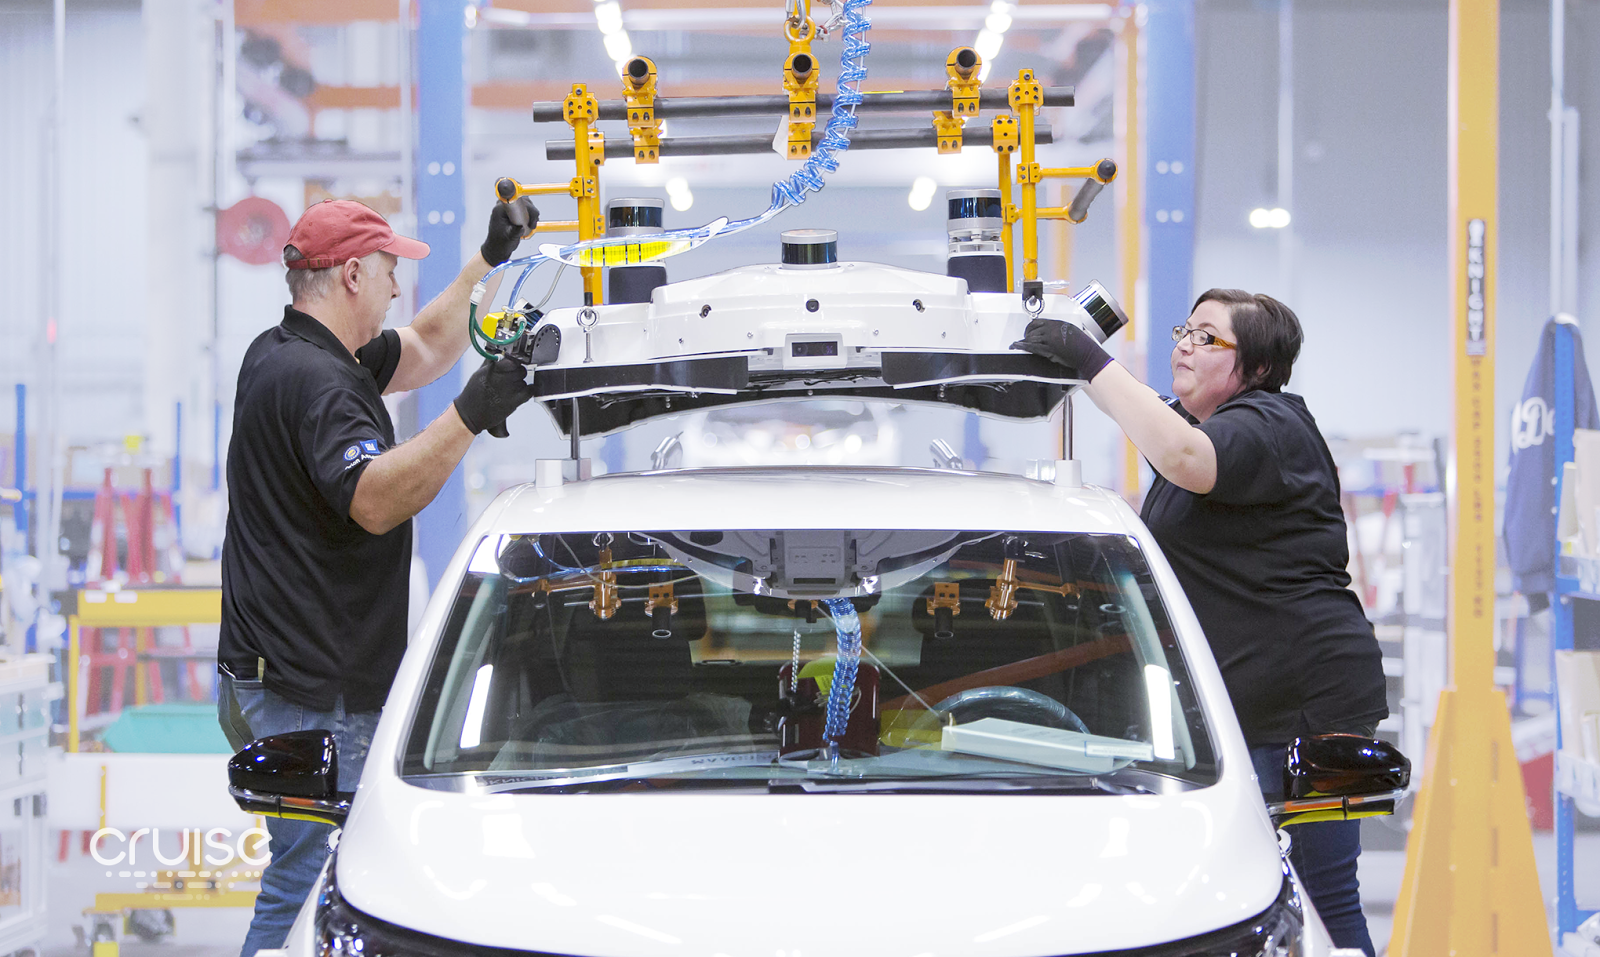 GM workers assembling a test car for Cruise.